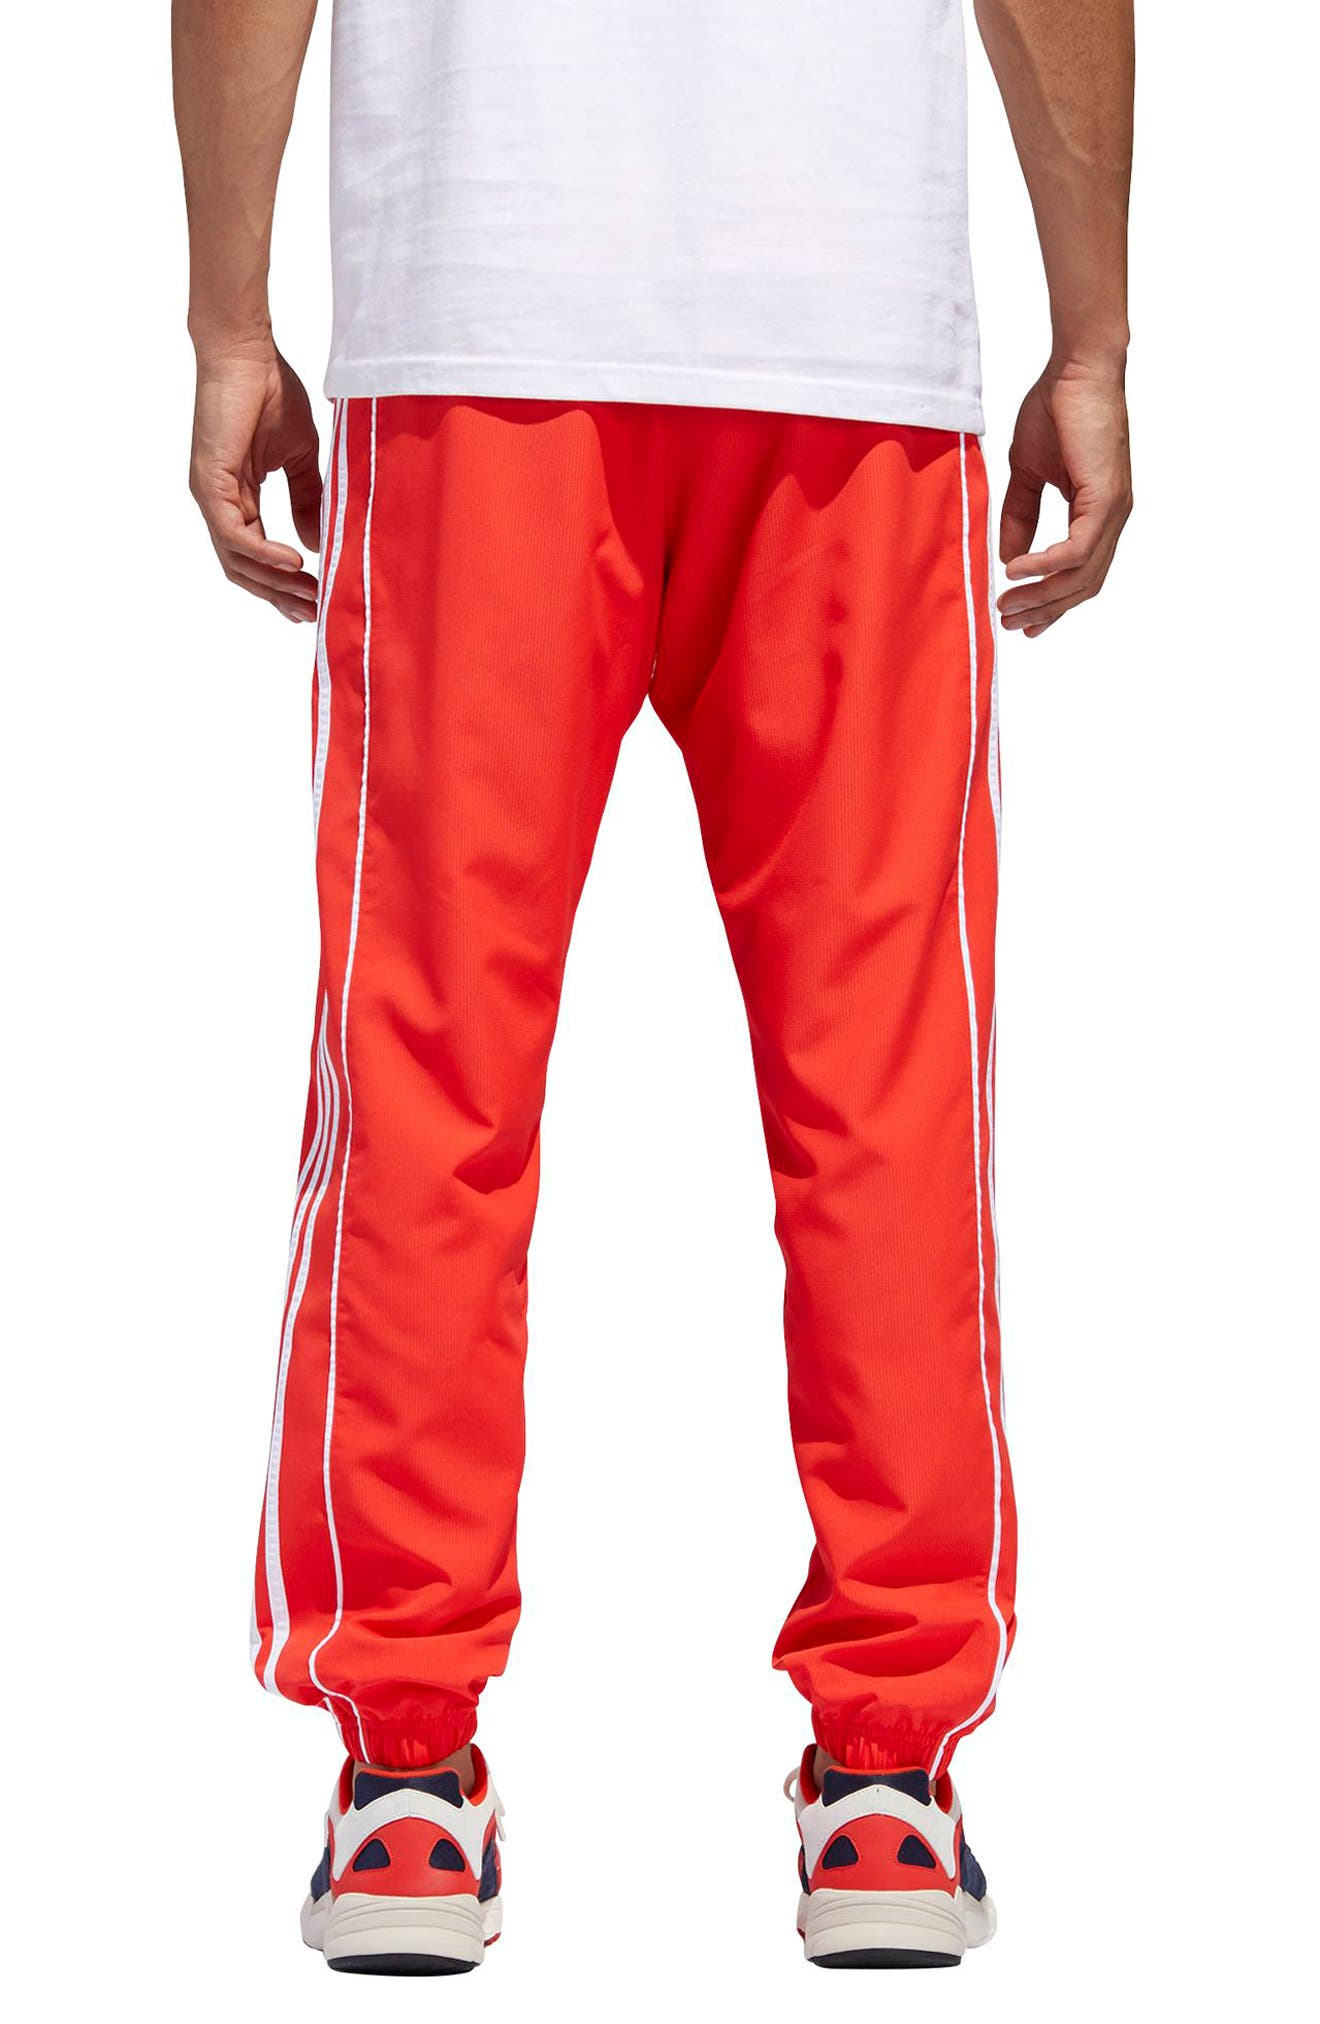 Authentics Ripstop Track Pants,                             Alternate thumbnail 2, color,                             HI-RES RED/ WHITE